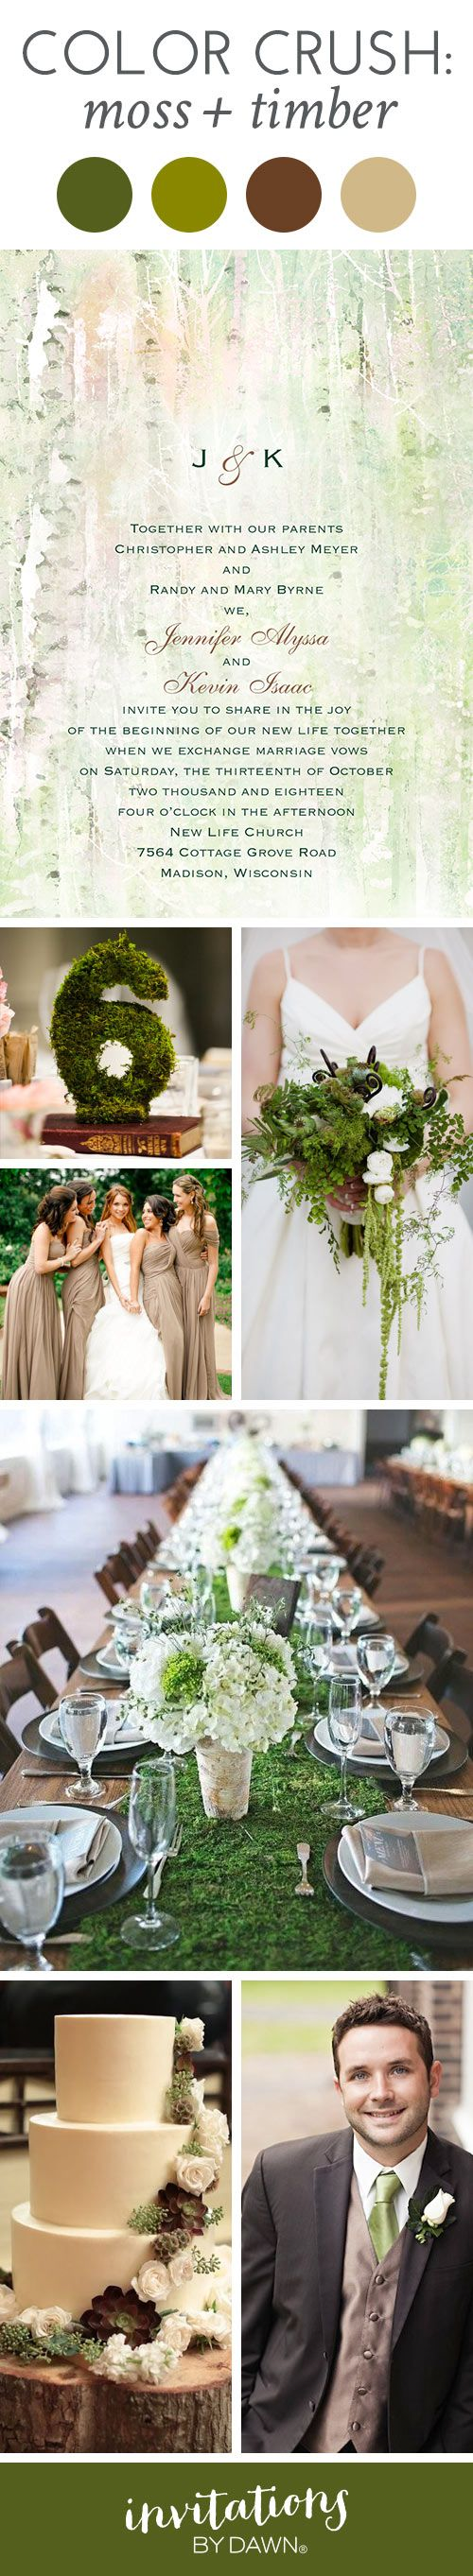 Wedding Color Inspiration: Moss + Timber. Enchanting, charming and oh-so-romantic. #weddinginspiration